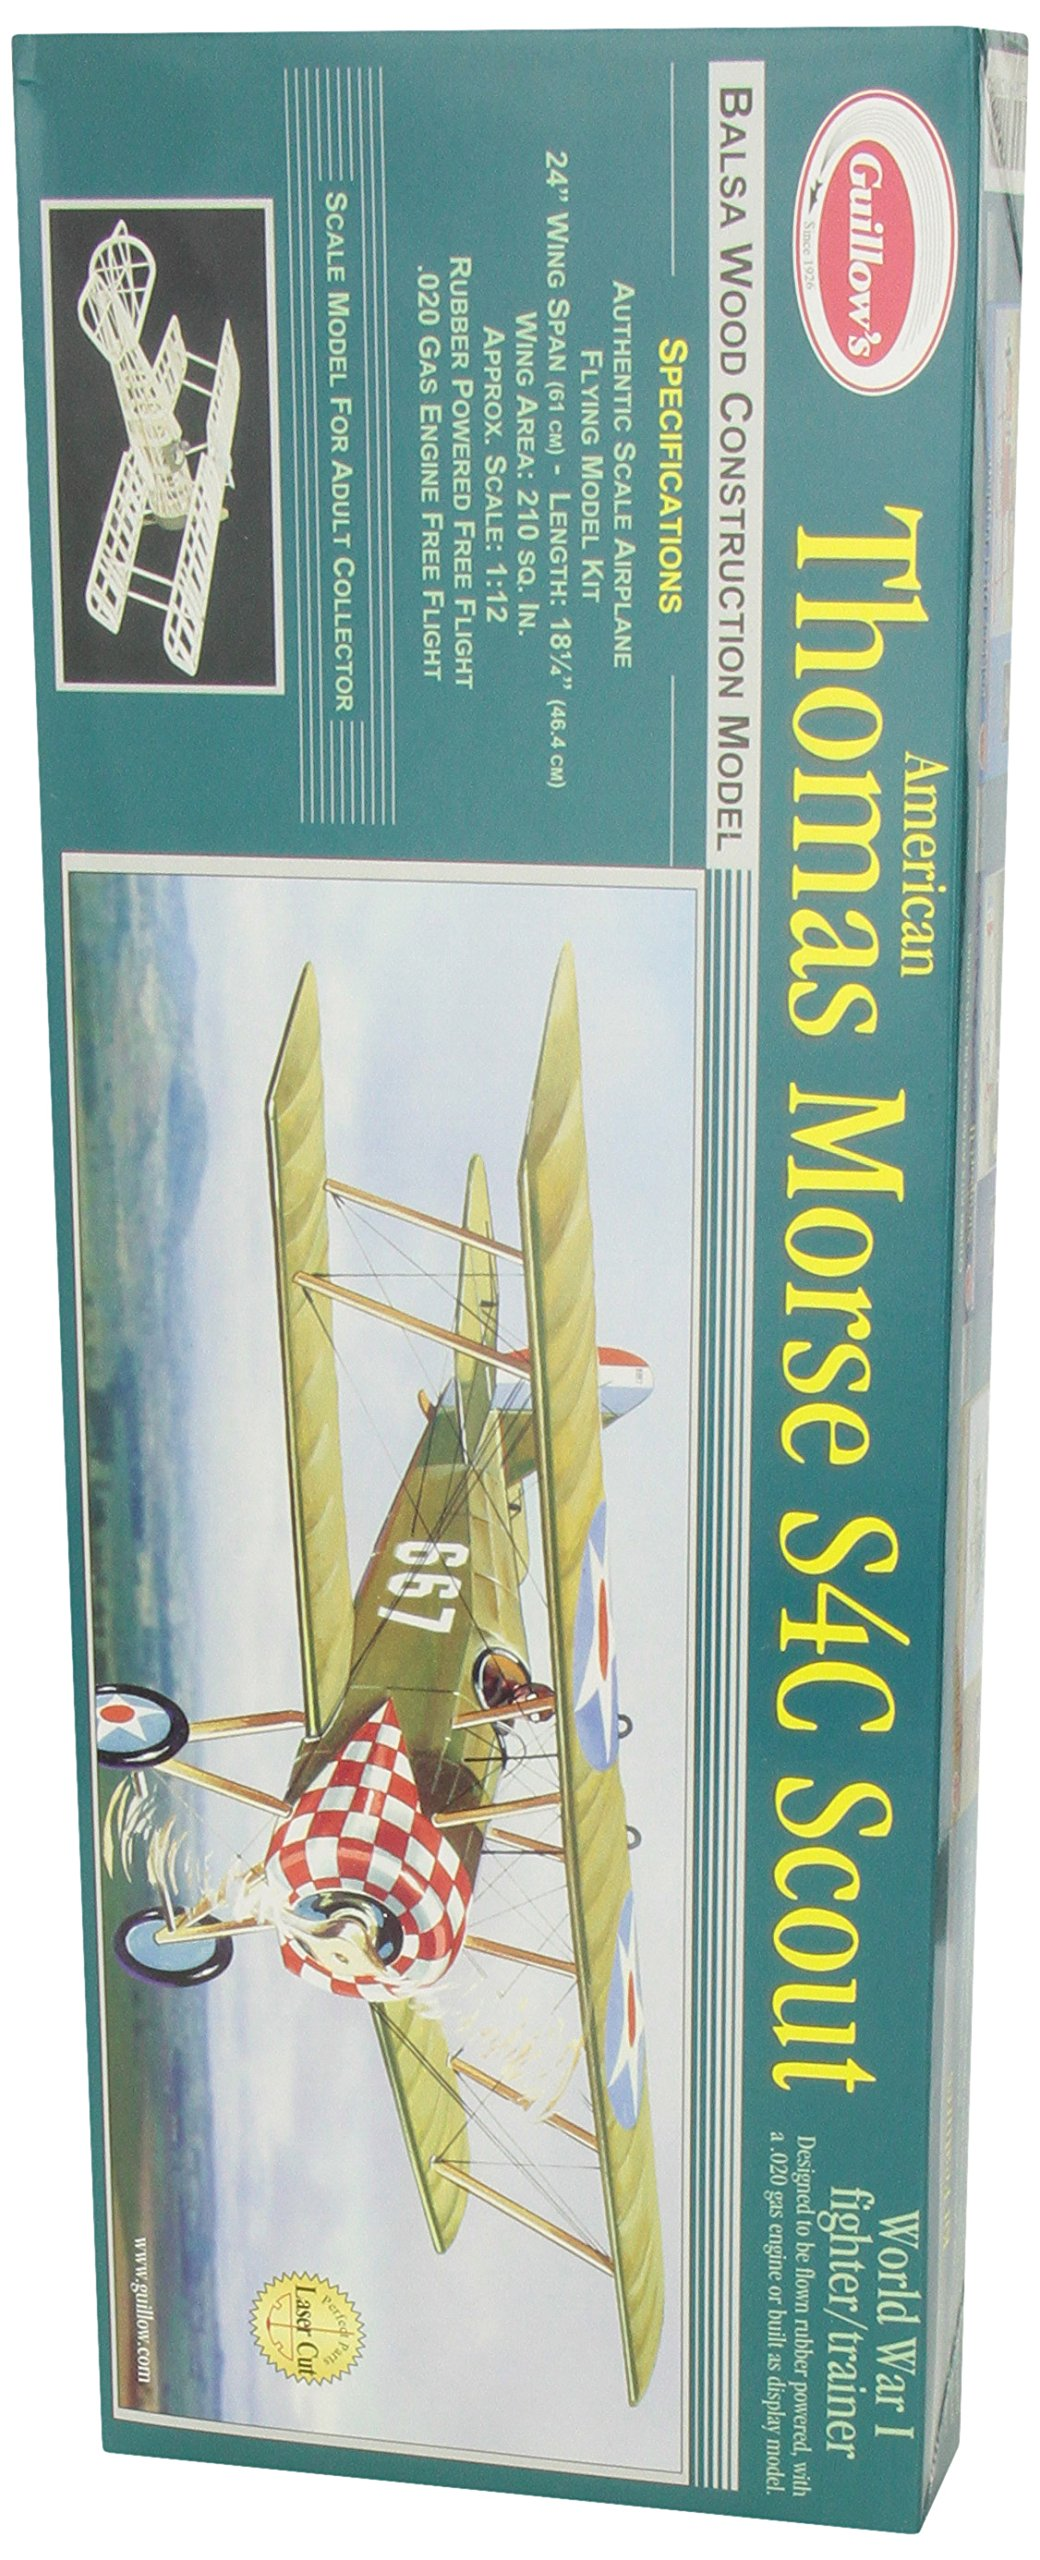 Guillow's Thomas Morse Scout Laser Cut Model Kit by Guillow (Image #5)